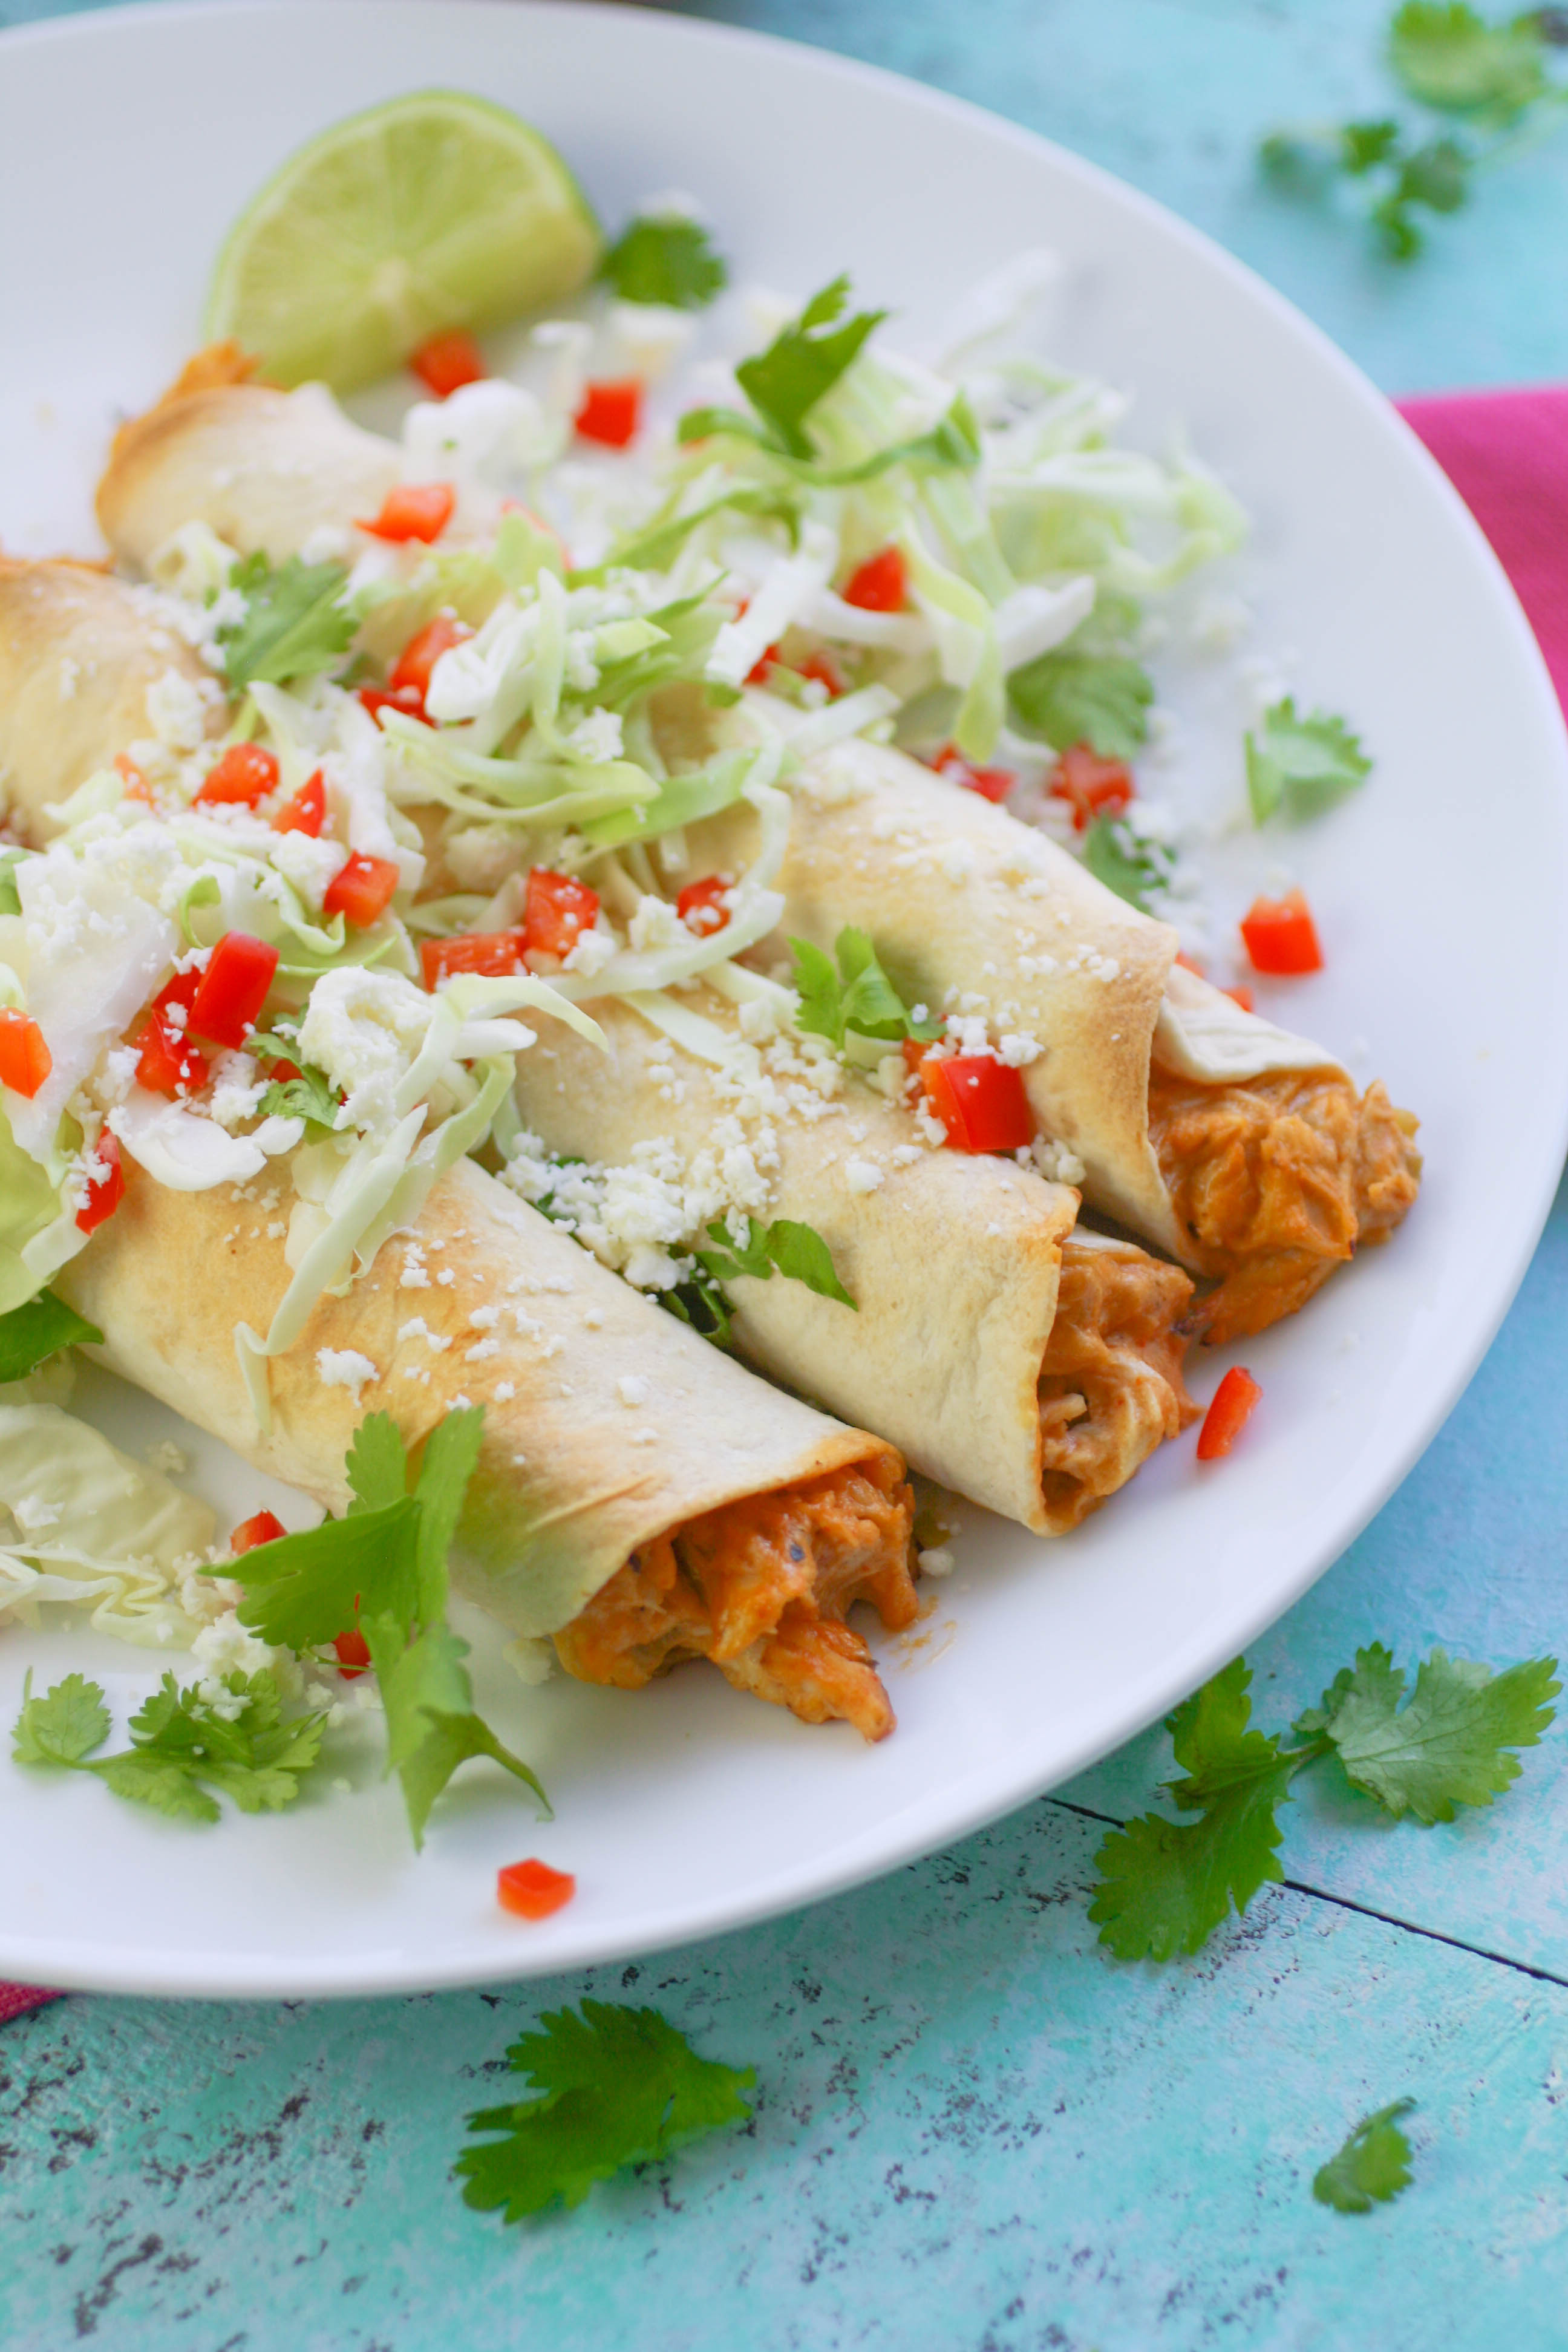 Baked Chicken and Green Chile Taquitos are filling and easy to make as a snack or part of a light meal. Baked Chicken and Green Chile Taquitos are a Mexican-inspired favorite to serve anytime!